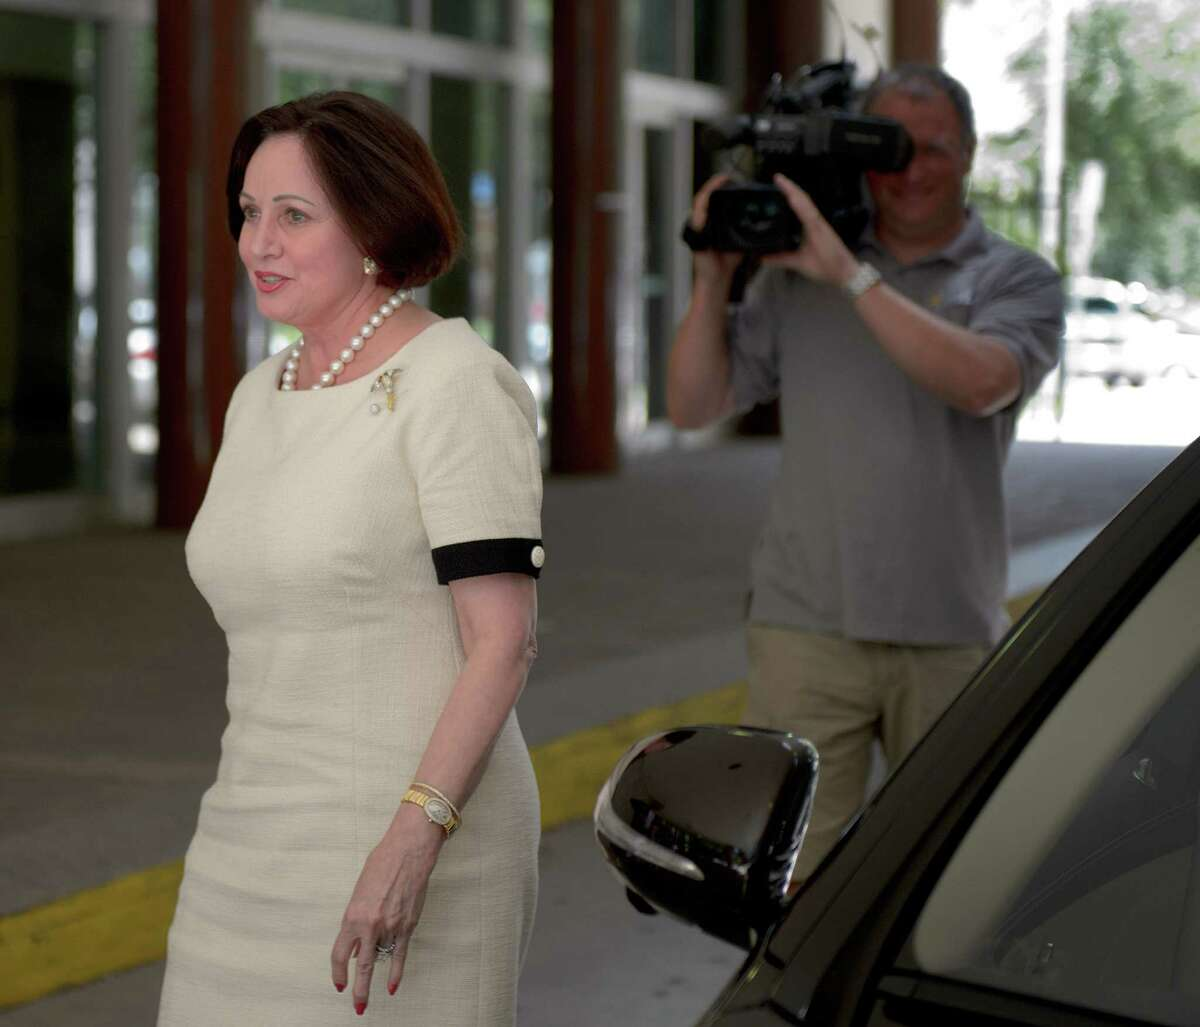 Gayle Benson was named by husband Tom Benson as his primary successor, sparking the New Orleans lawsuit and others.